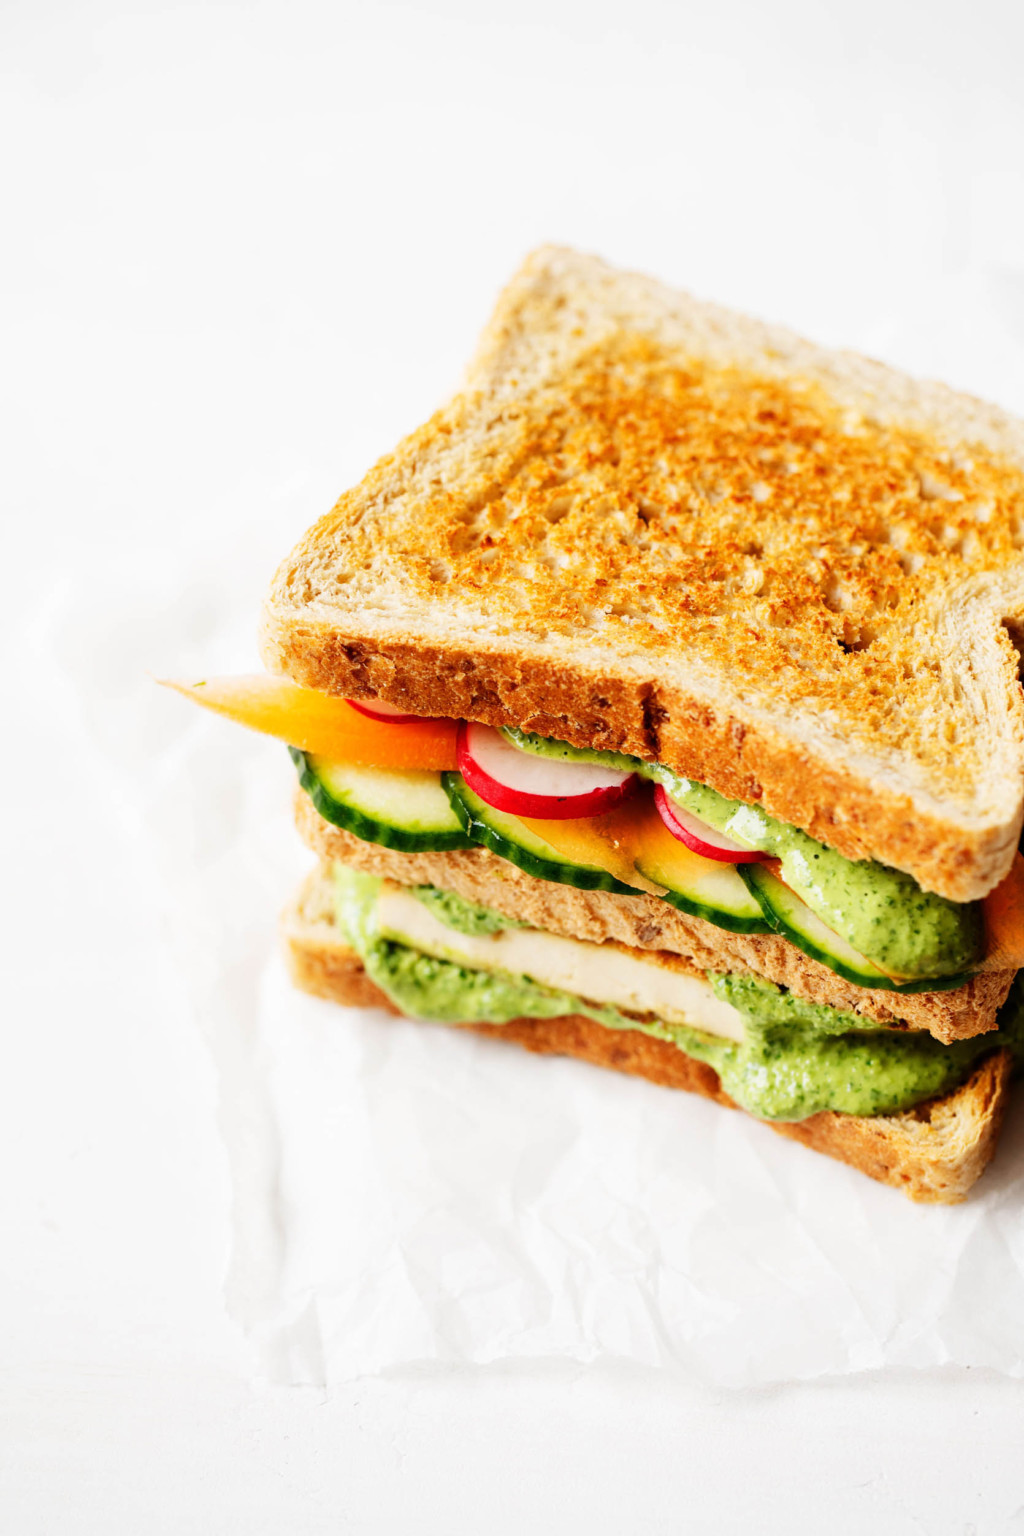 A three layered, plant based sandwich with vegetables and tofu is placed on a small piece of parchment.